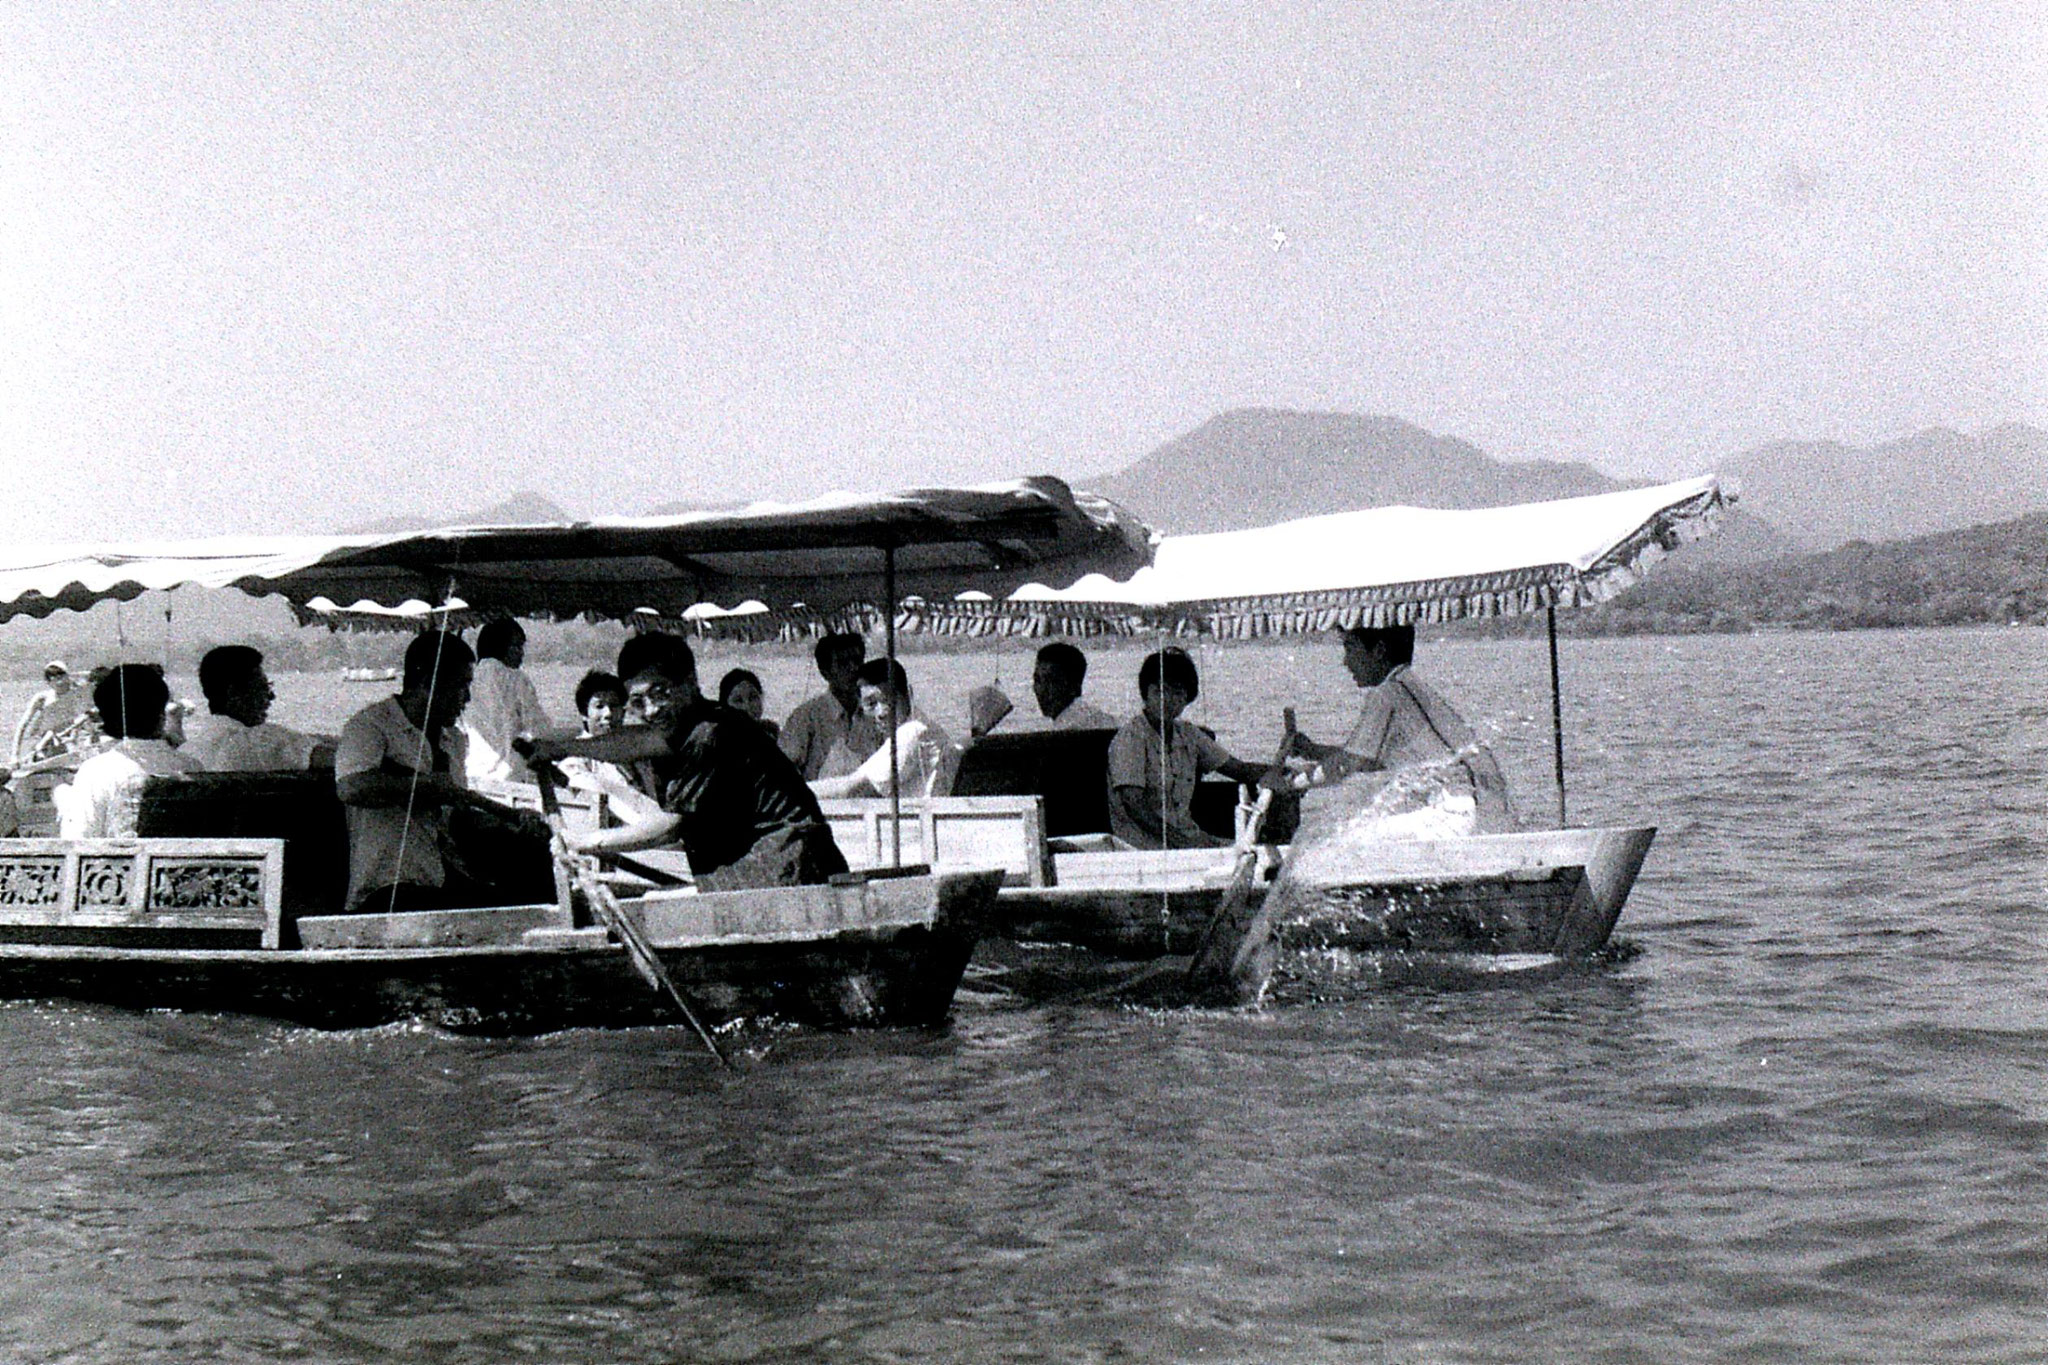 16/7/1989: 6: boat near West Lake pavilion